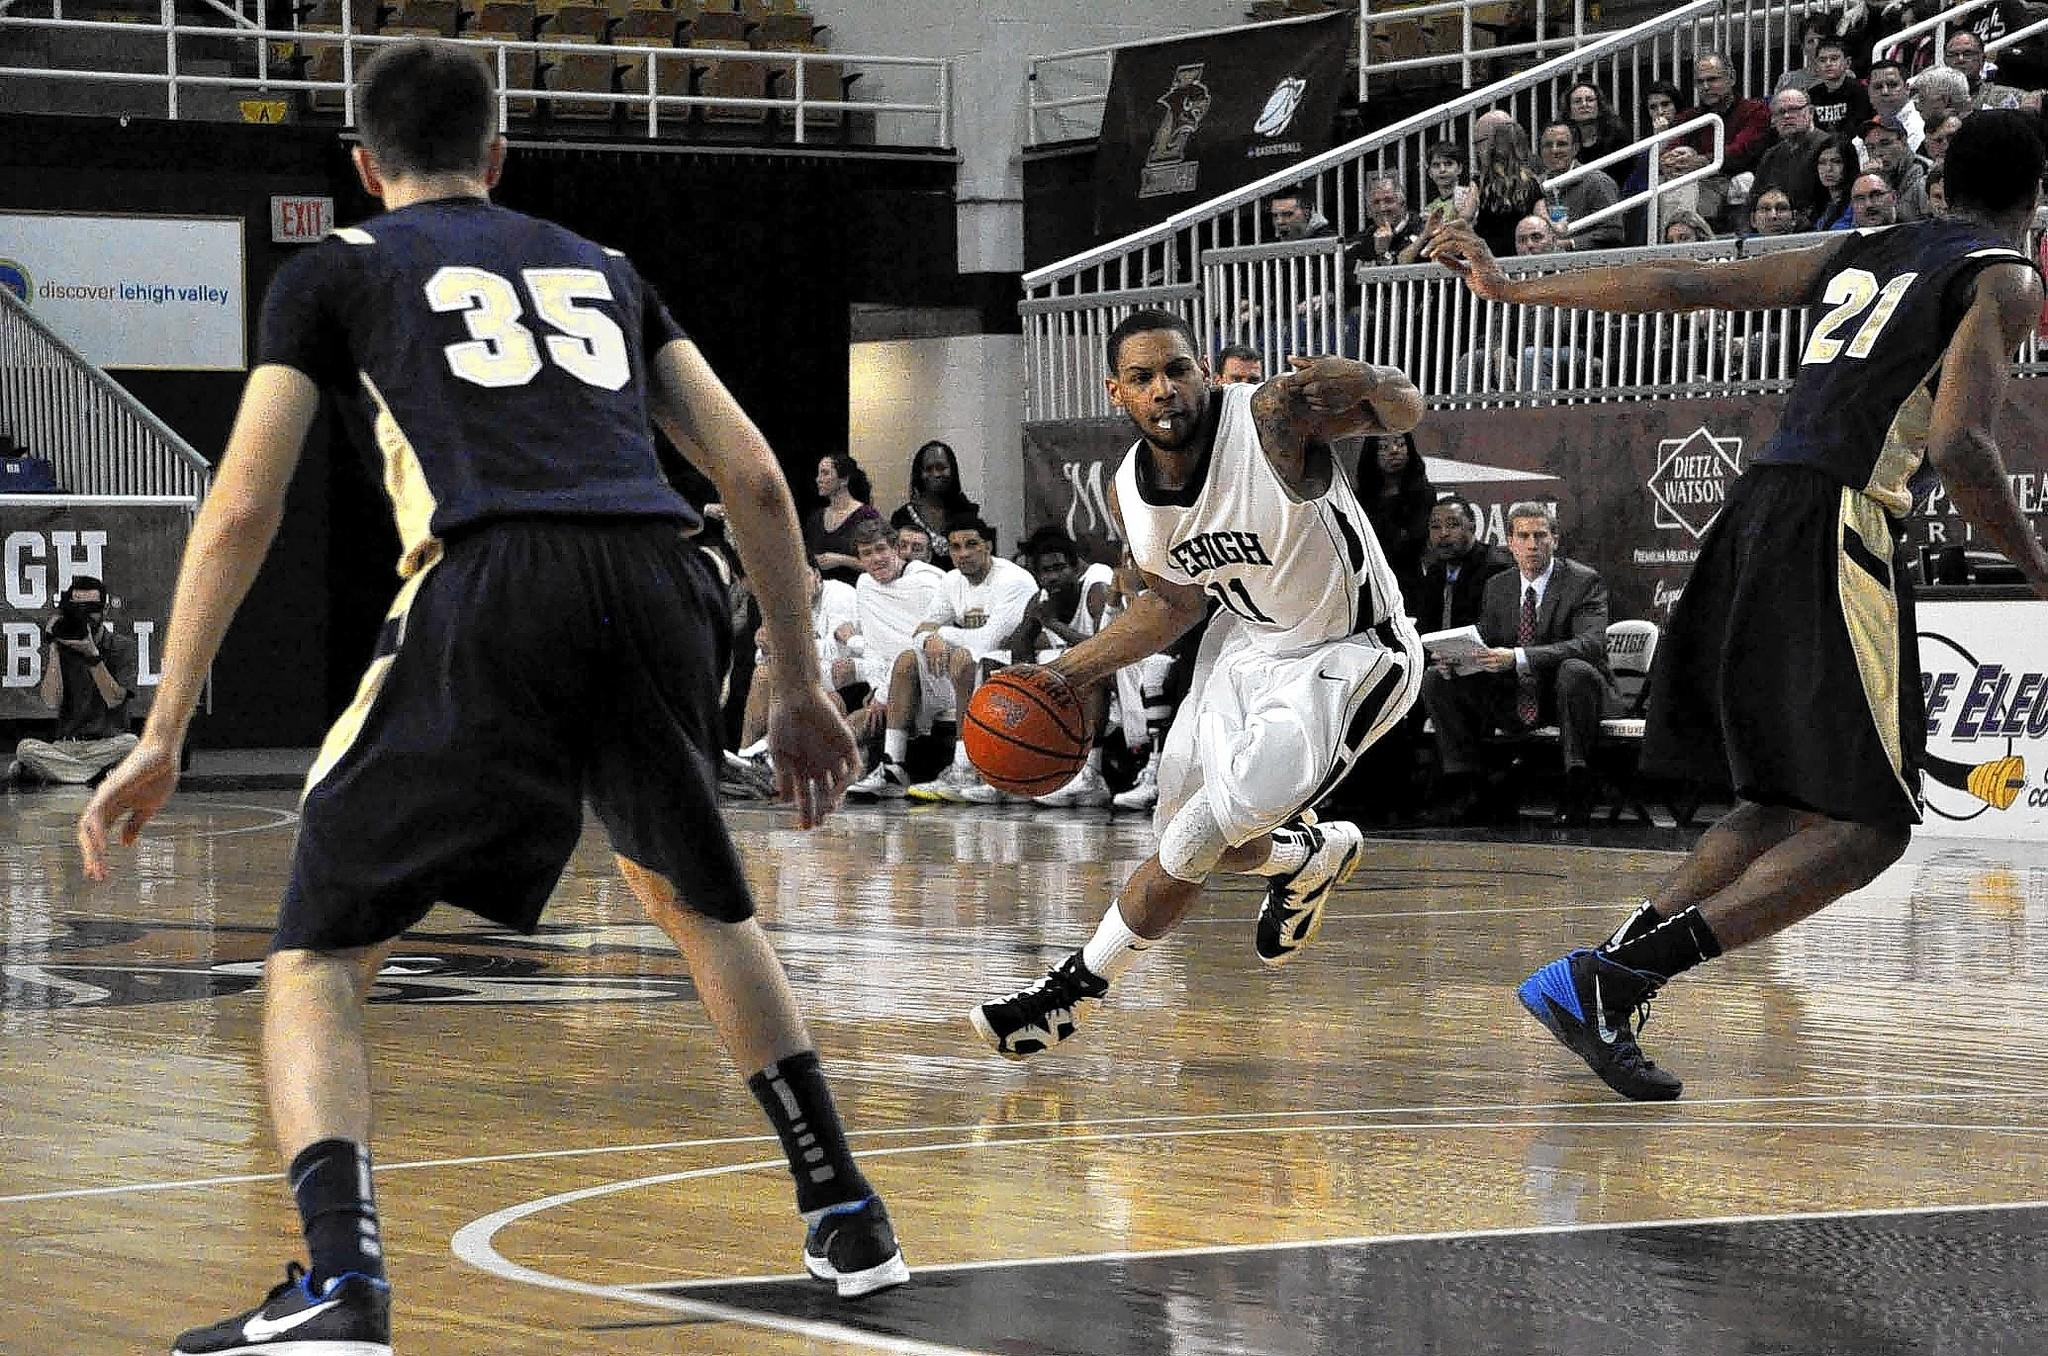 Mackey McKnight drives the ball towards the basket during the game against Navy on February 19, 2014.